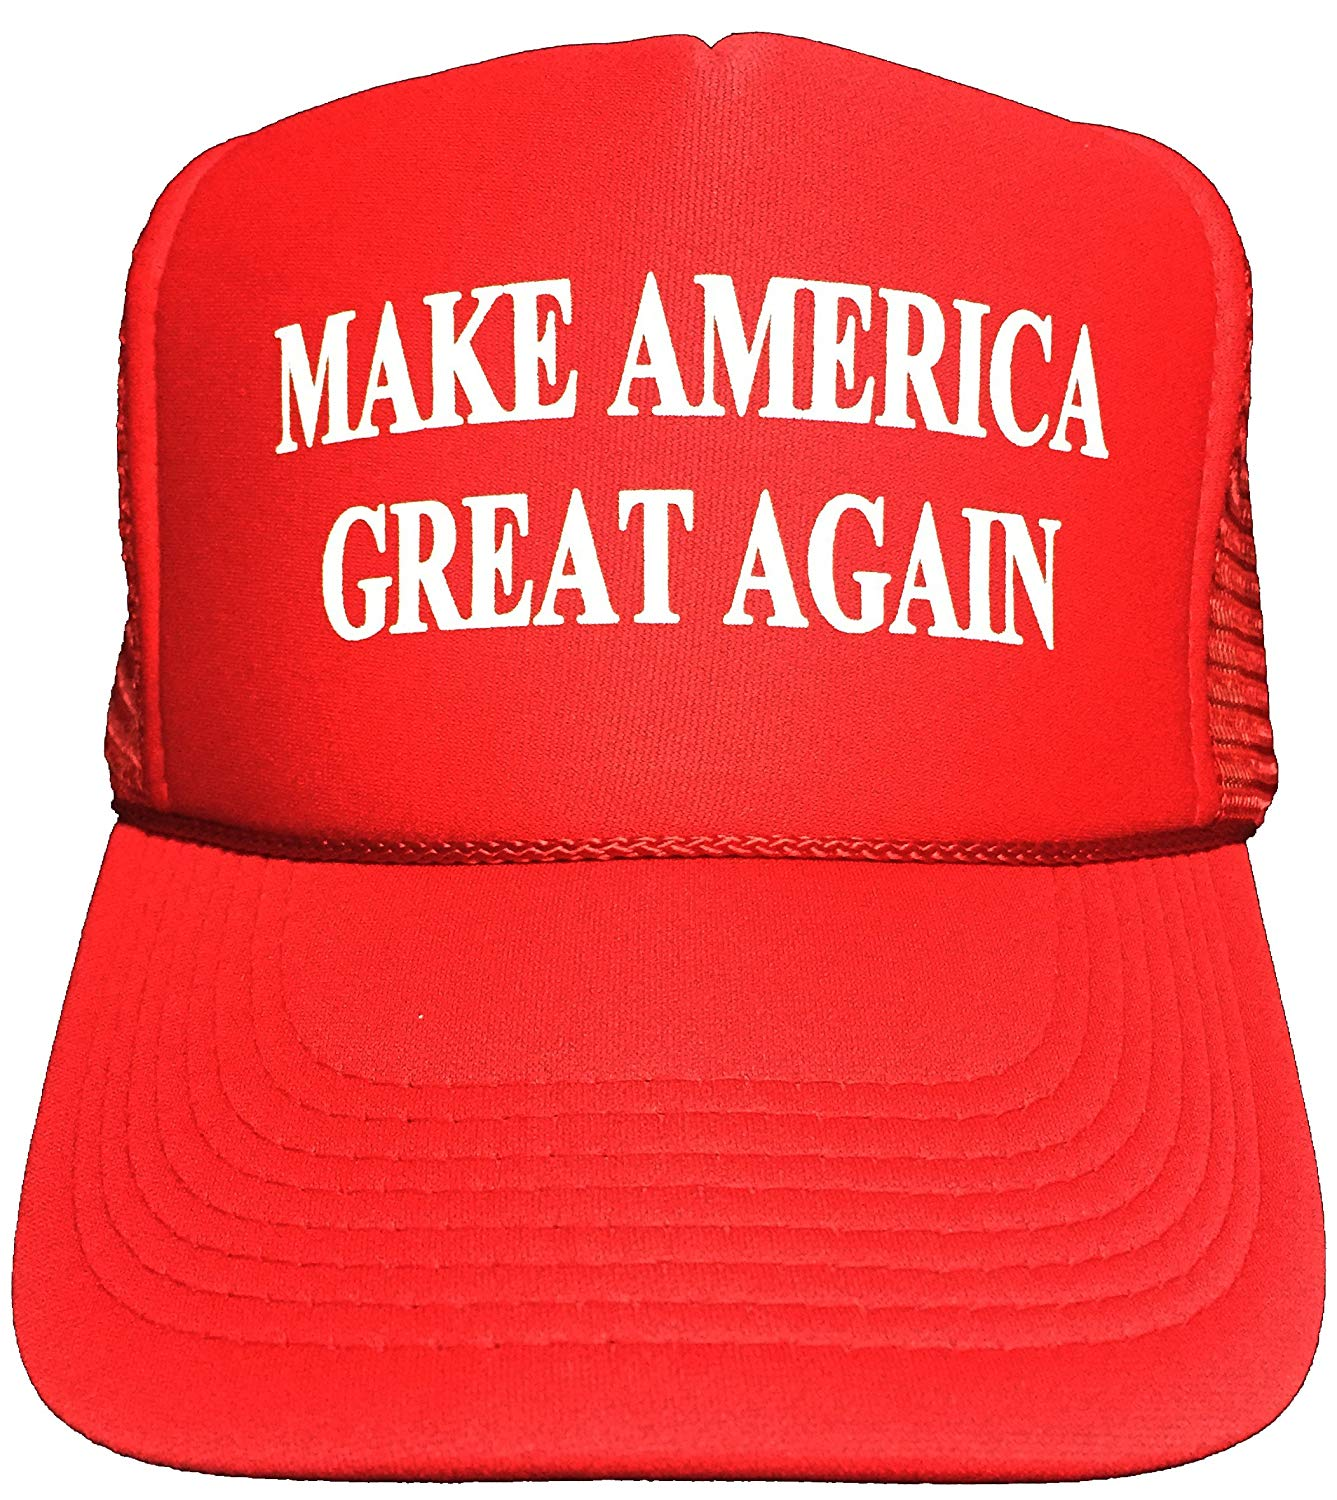 Buy Trump 2016 Make America Great Again Red Adjustable Hat.